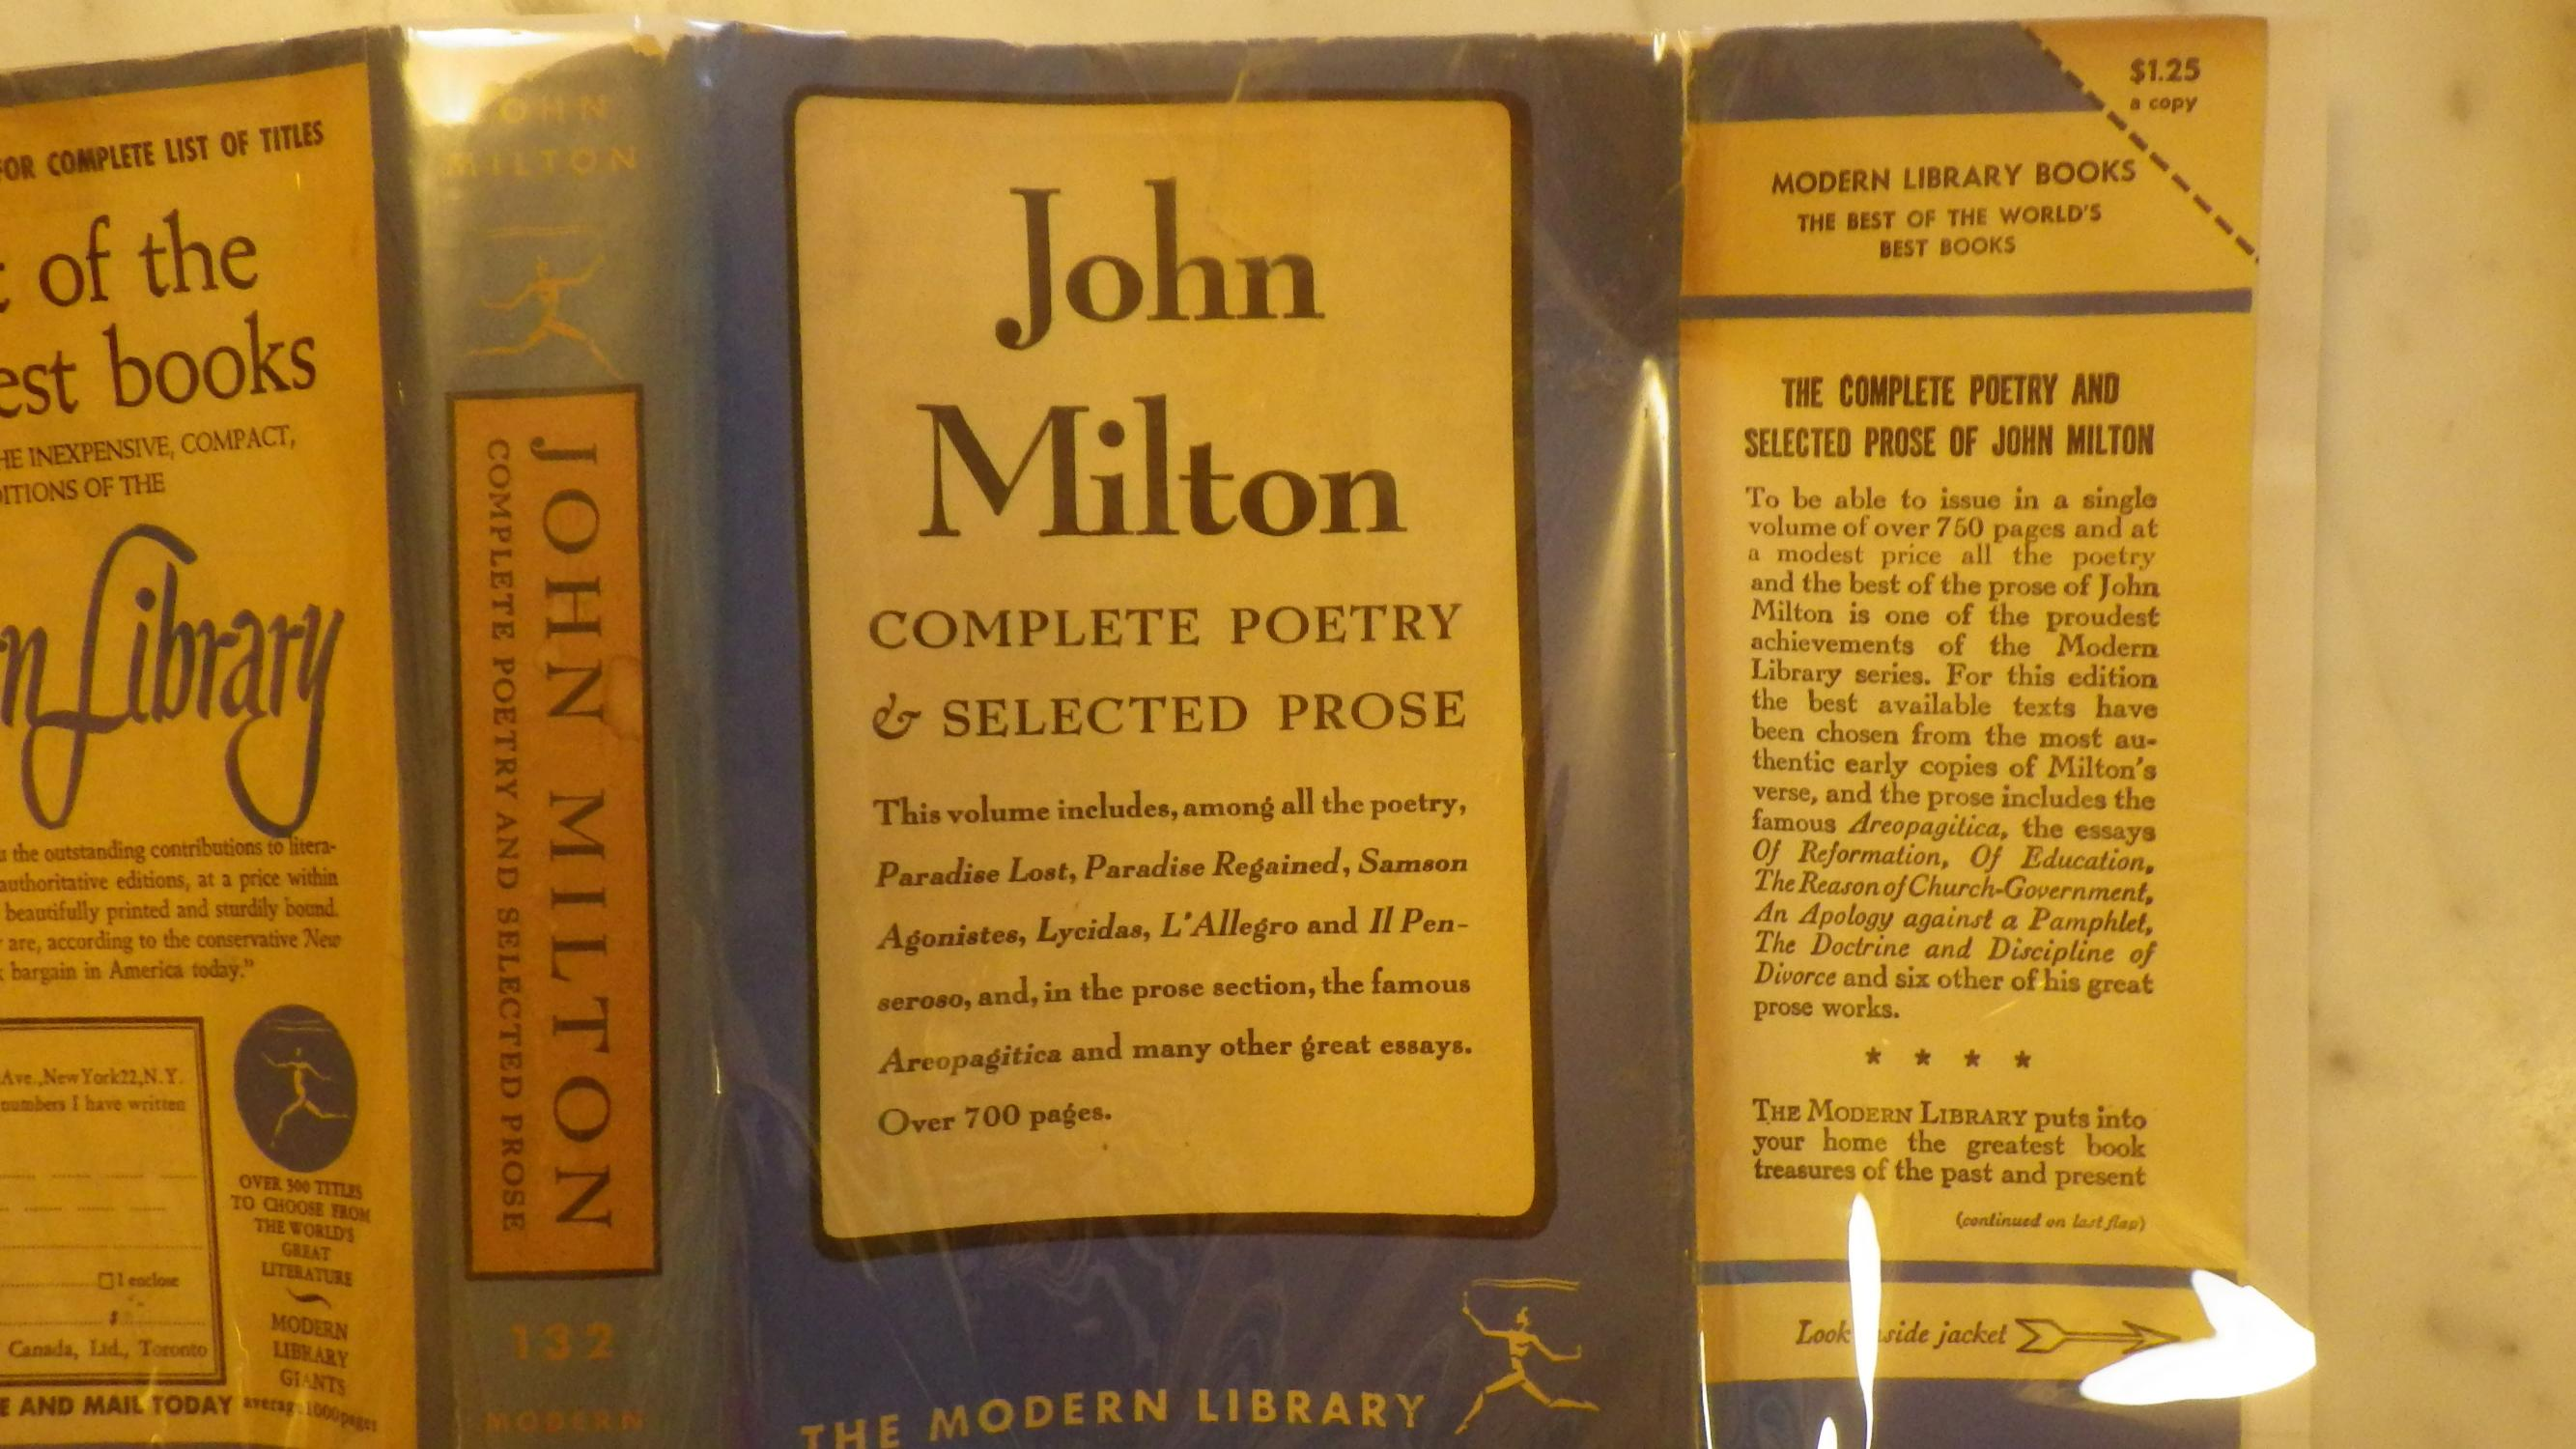 Complete Poetry Selected Prose John Milton, First Edition